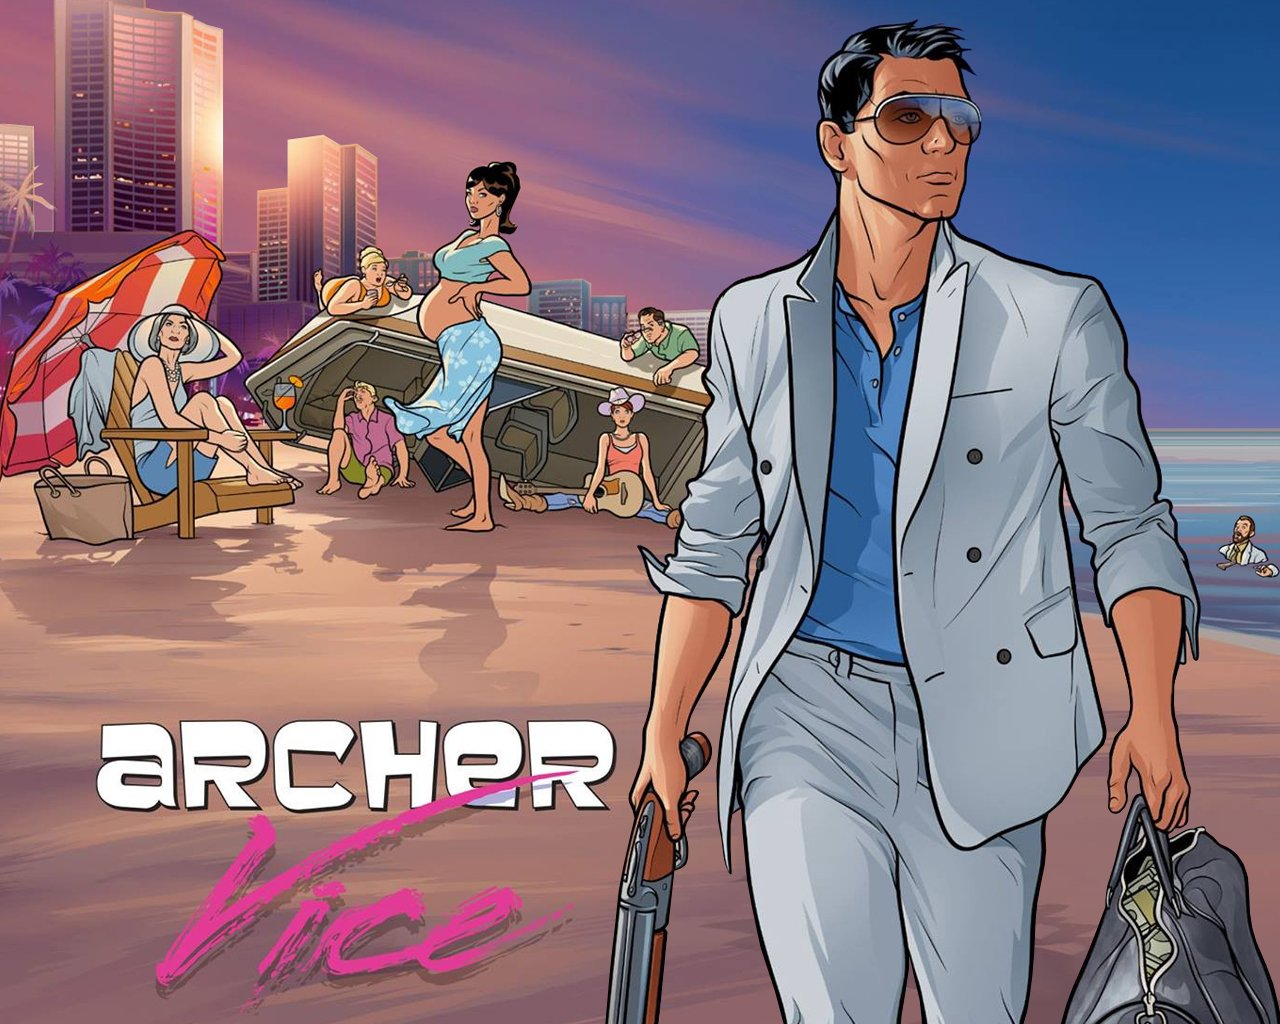 Archer Season 5 A Few Secrets Declassified One of Us 1280x1024